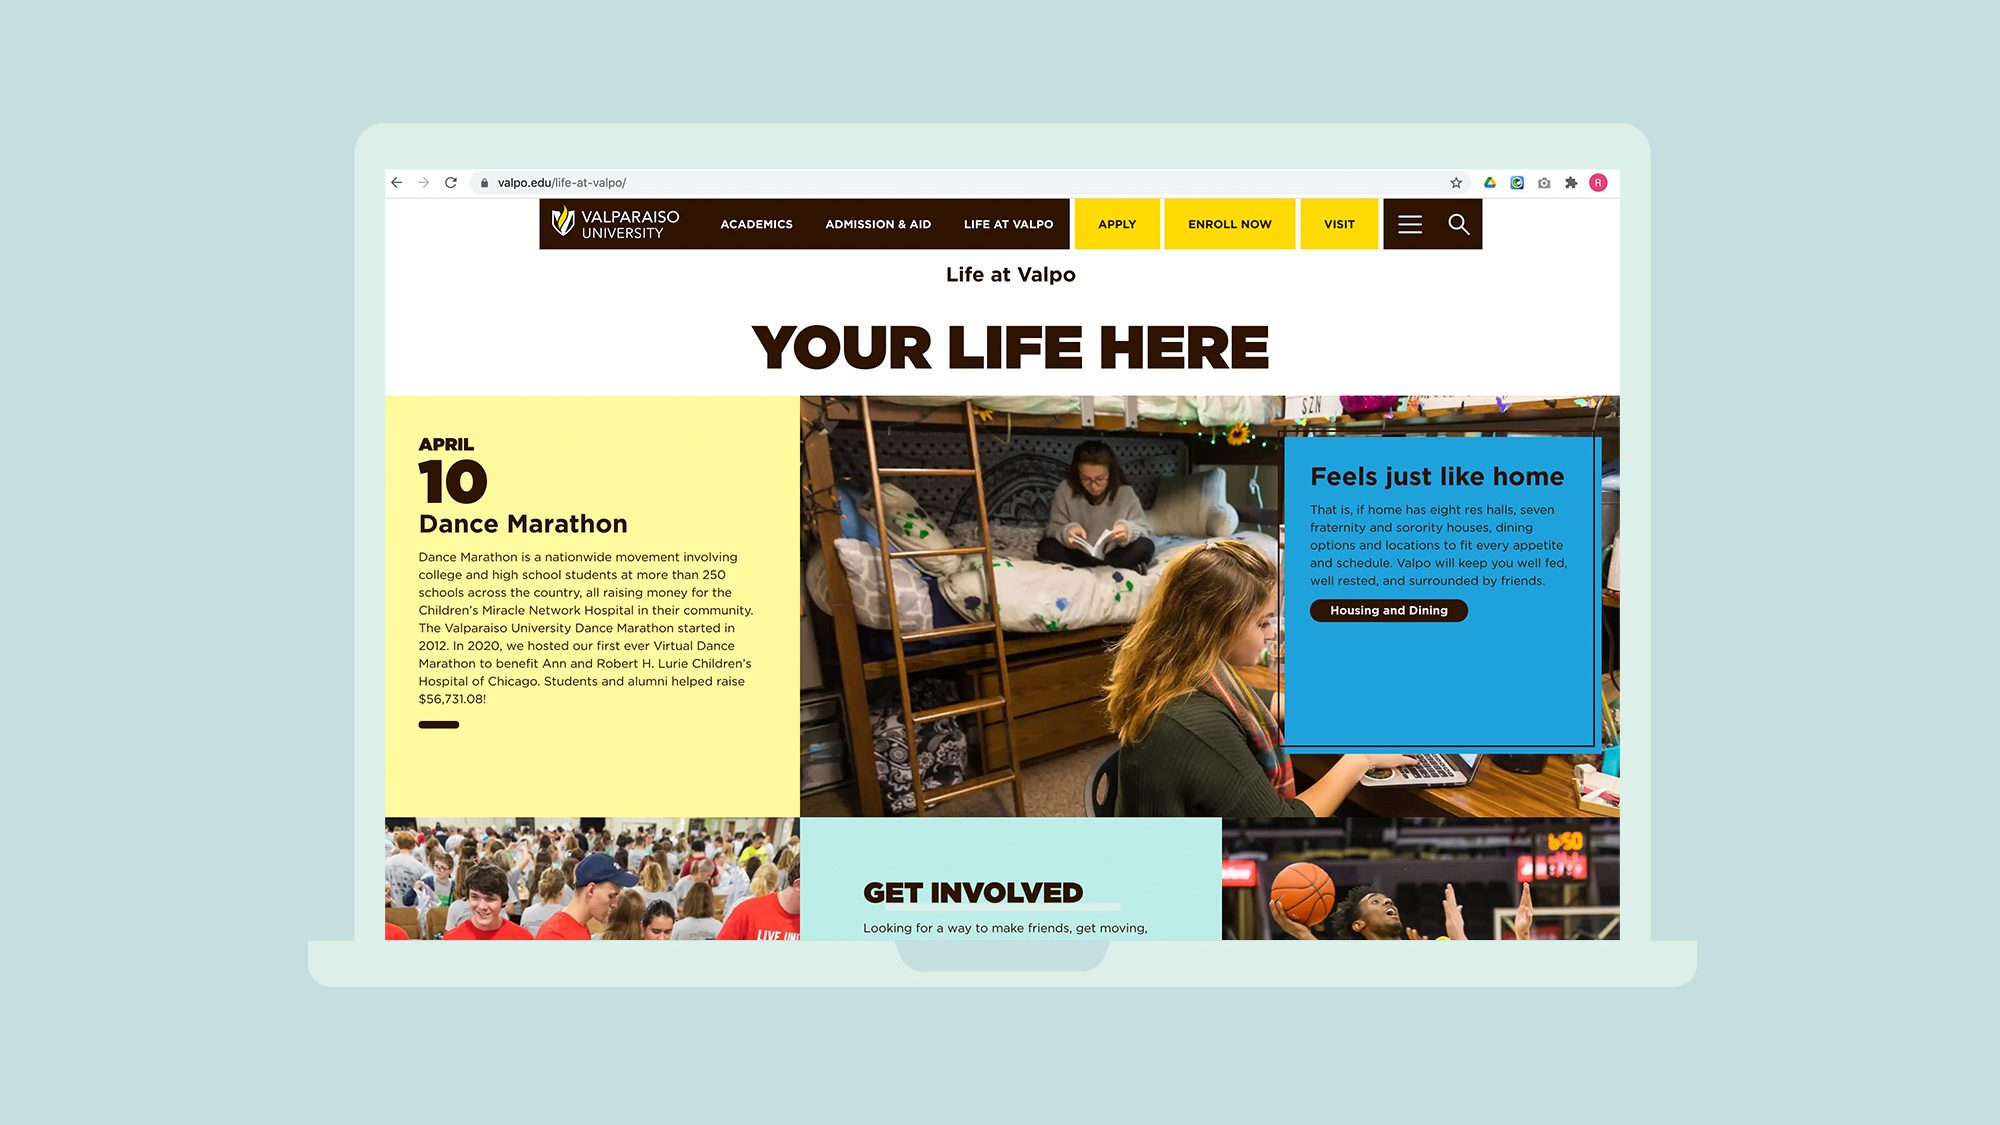 Website screenshot showing student life page.